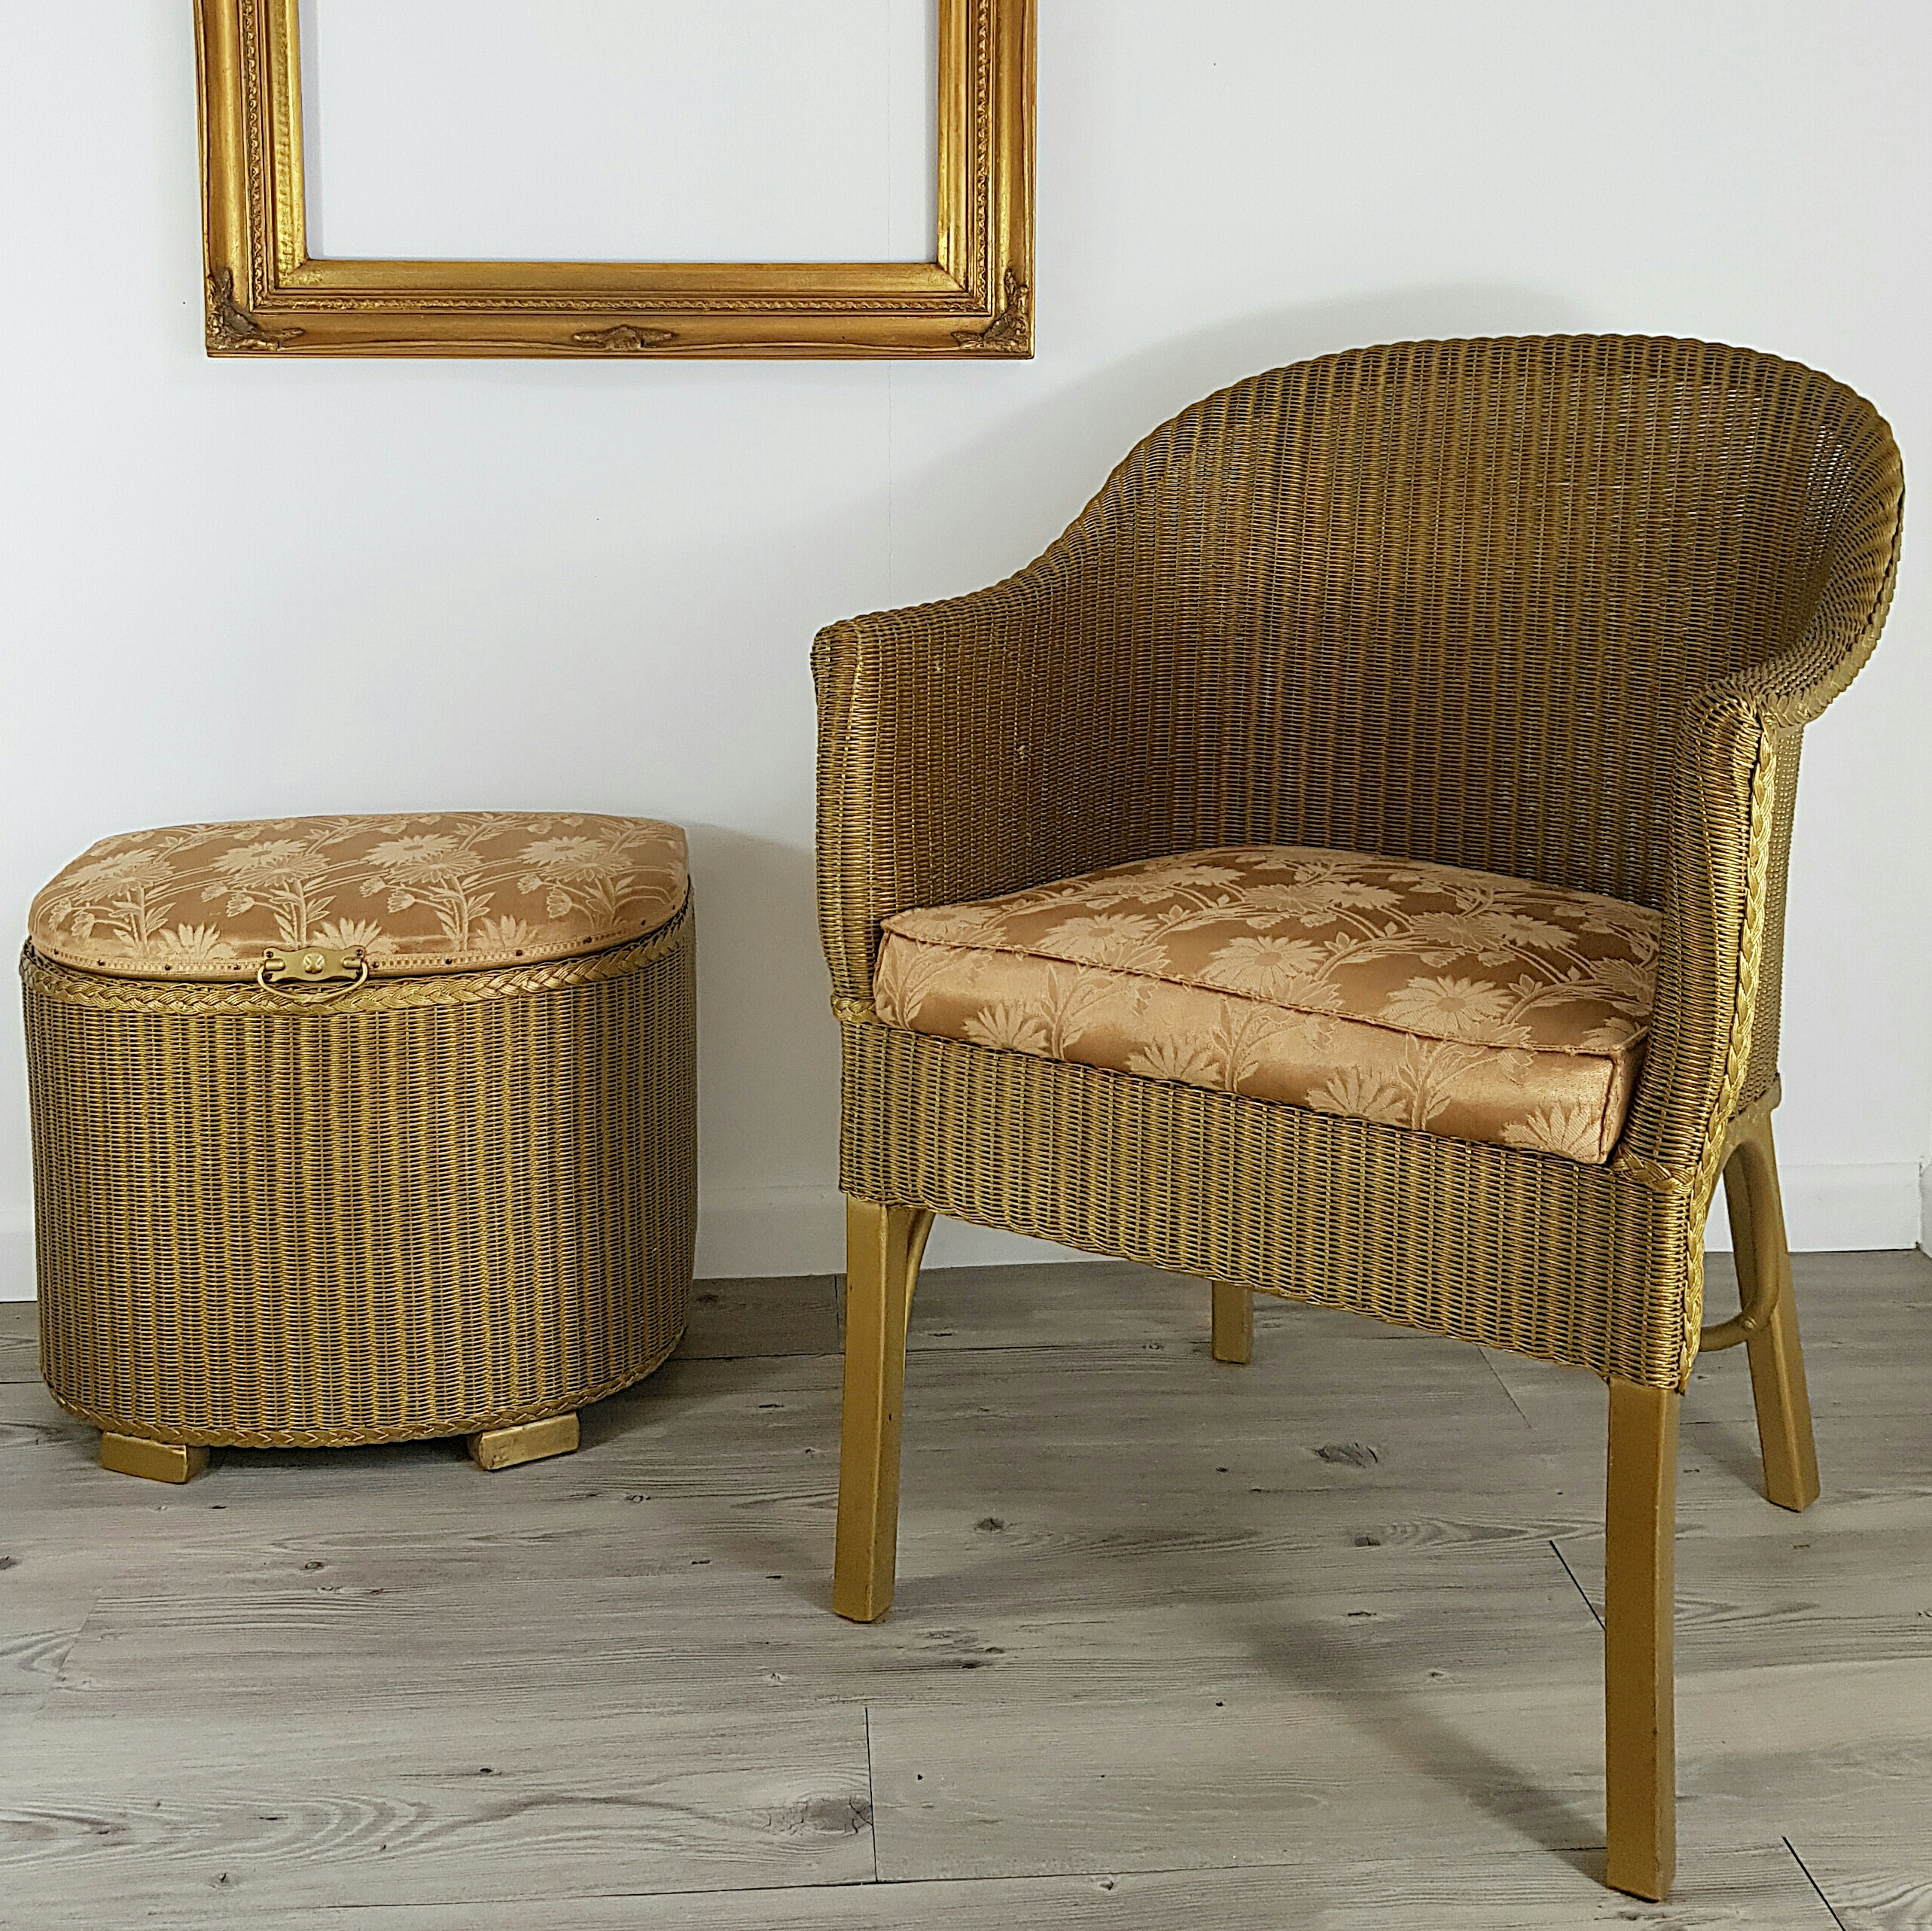 Lloyd Loom Armchair and Storage Footstool - Gold